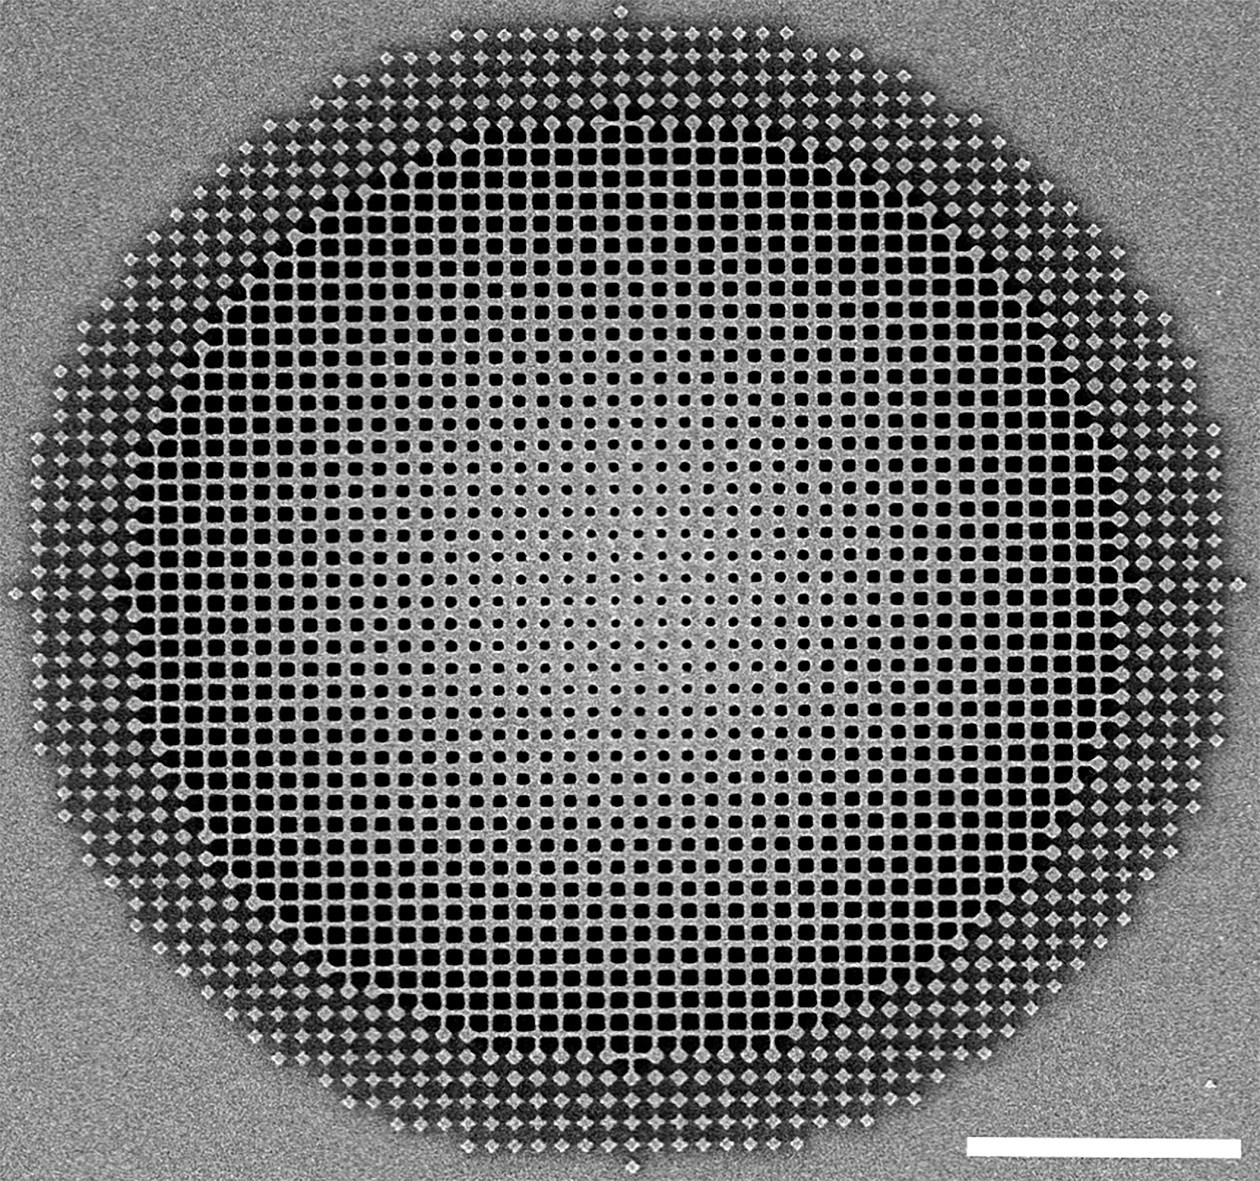 Shown is the fishnet achromatic metalens developed by Berkeley engineers.